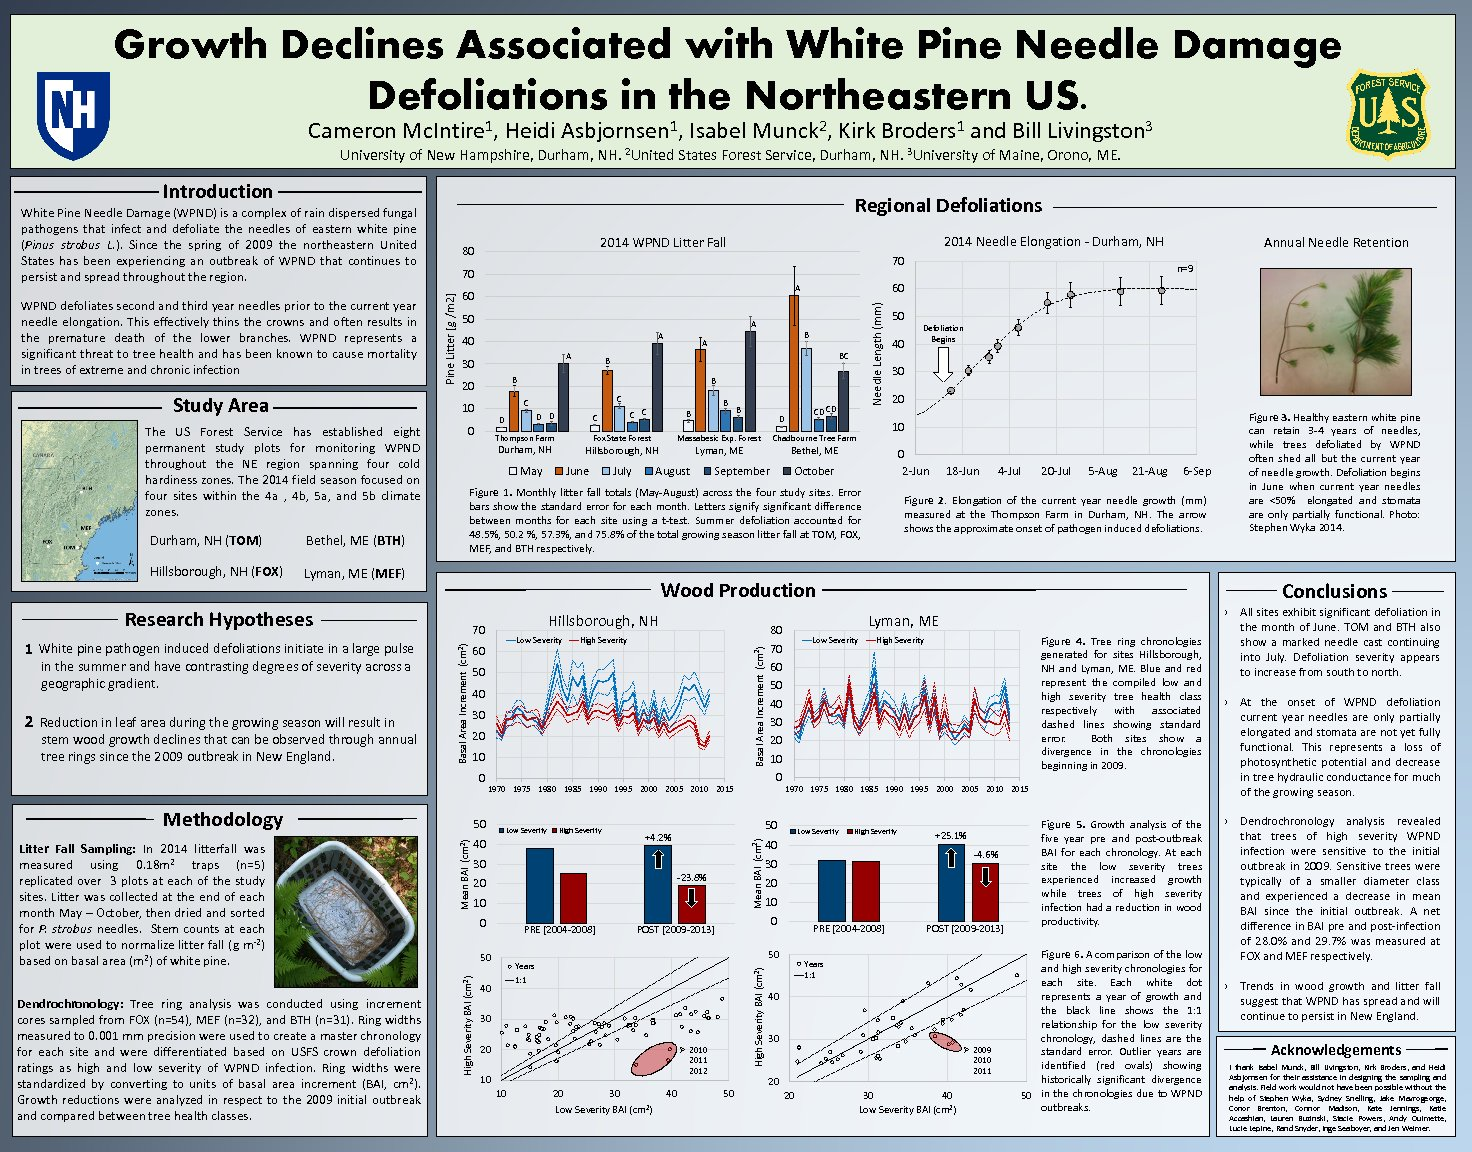 Growth Declines Associated With White Pine Needle Damage Defoliations In The Northeastern Us. by cm11